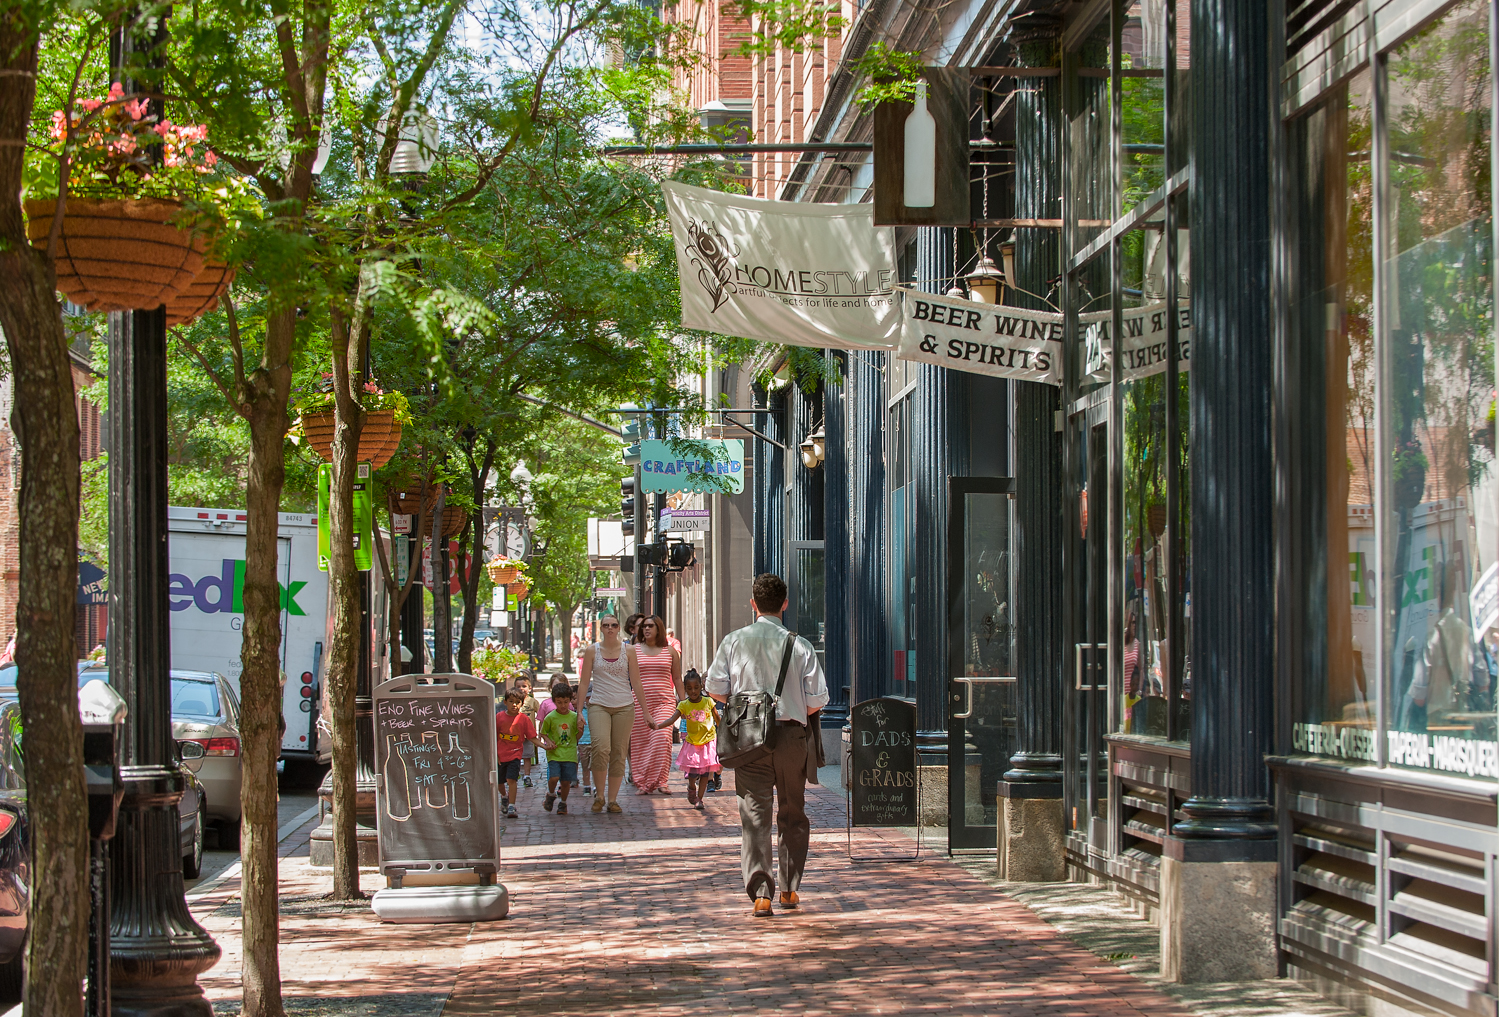 CNU -NE works to unite the New Urbanist movement through networking, collaboration, and education. -